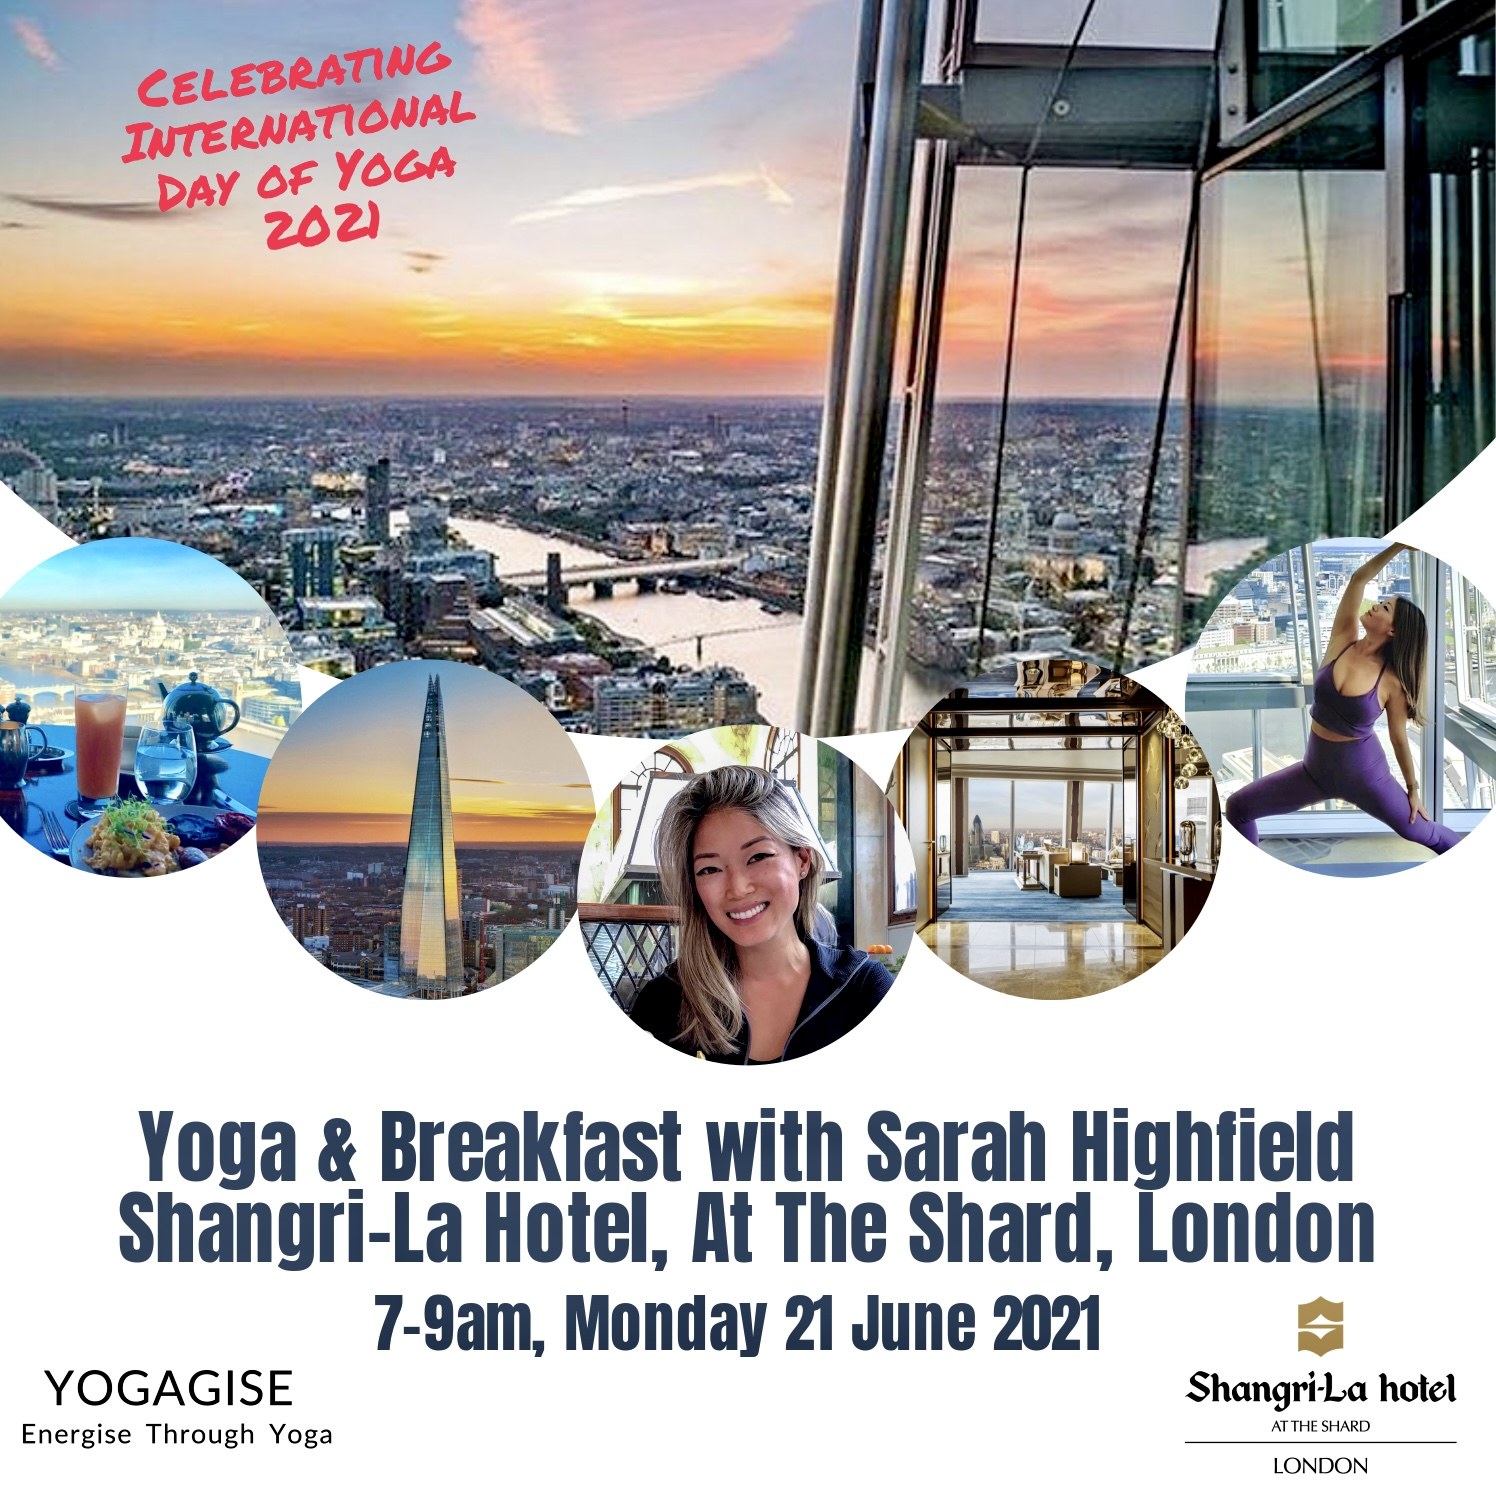 Morning Yoga Lessons in London